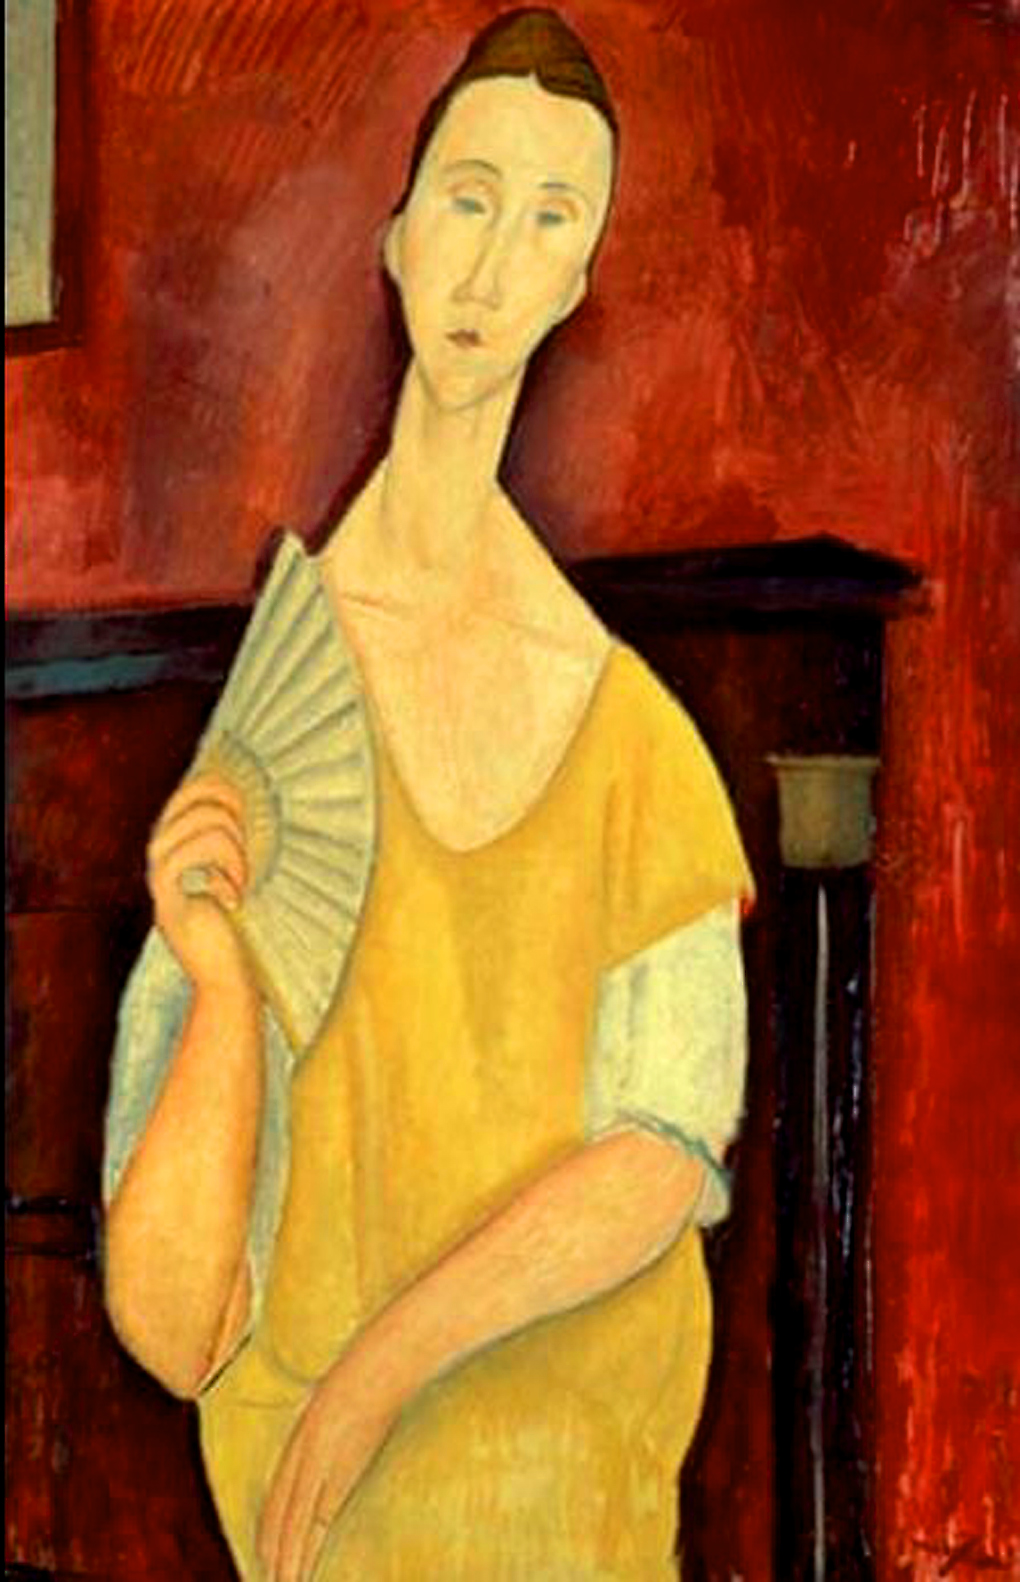 Modigliani's Woman With a Fan. Image Credit: Alto Vintage Images /Alamy, 2019.